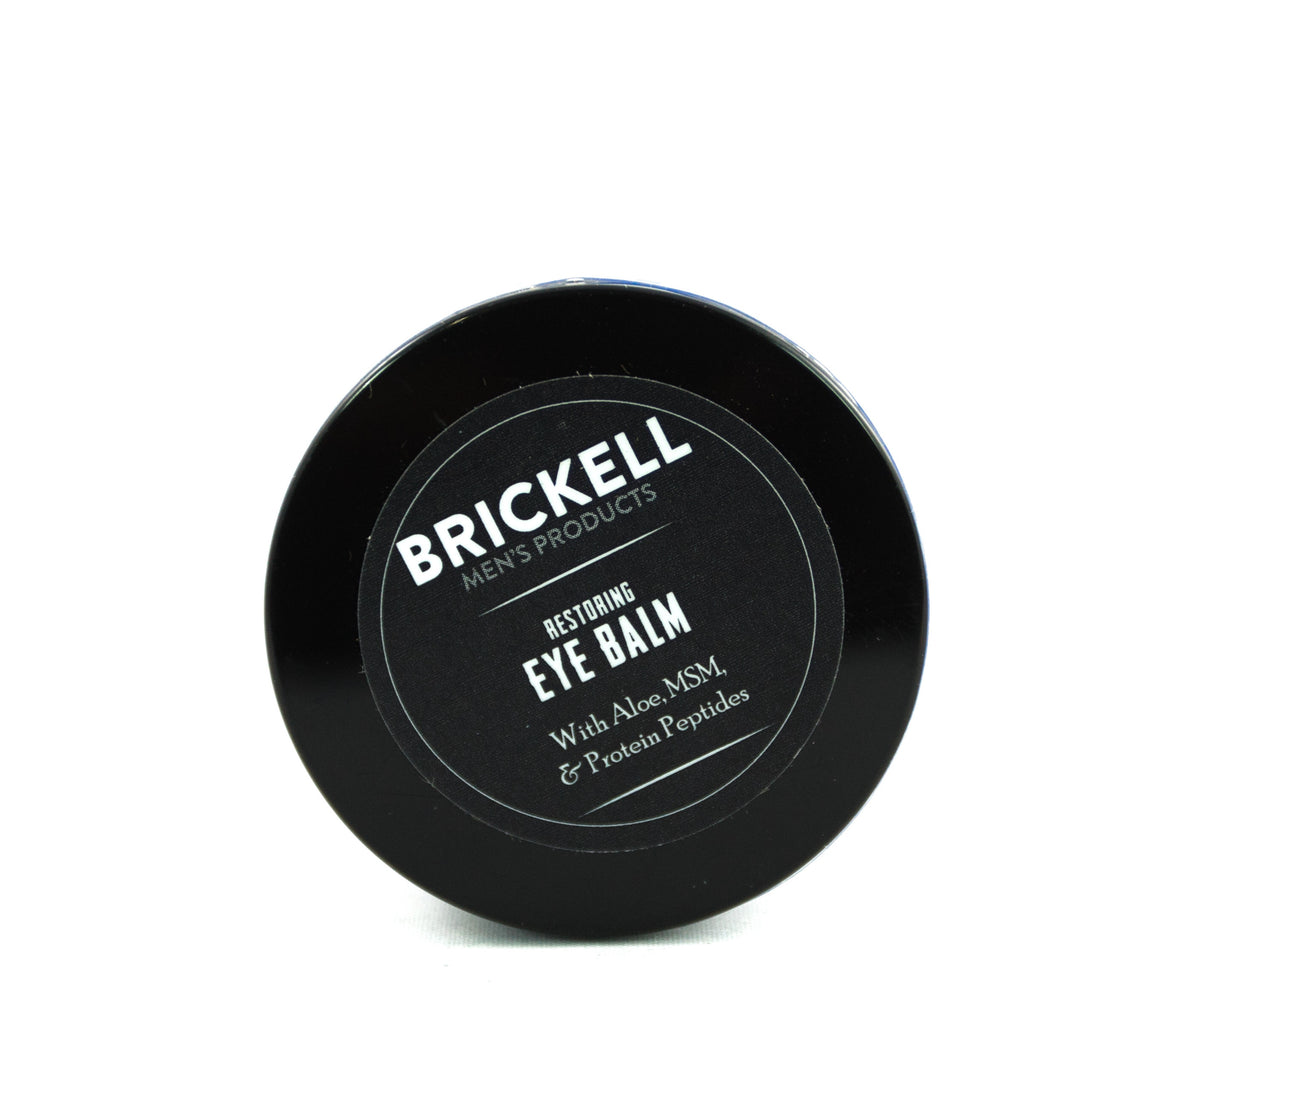 Brickell Eye Balm